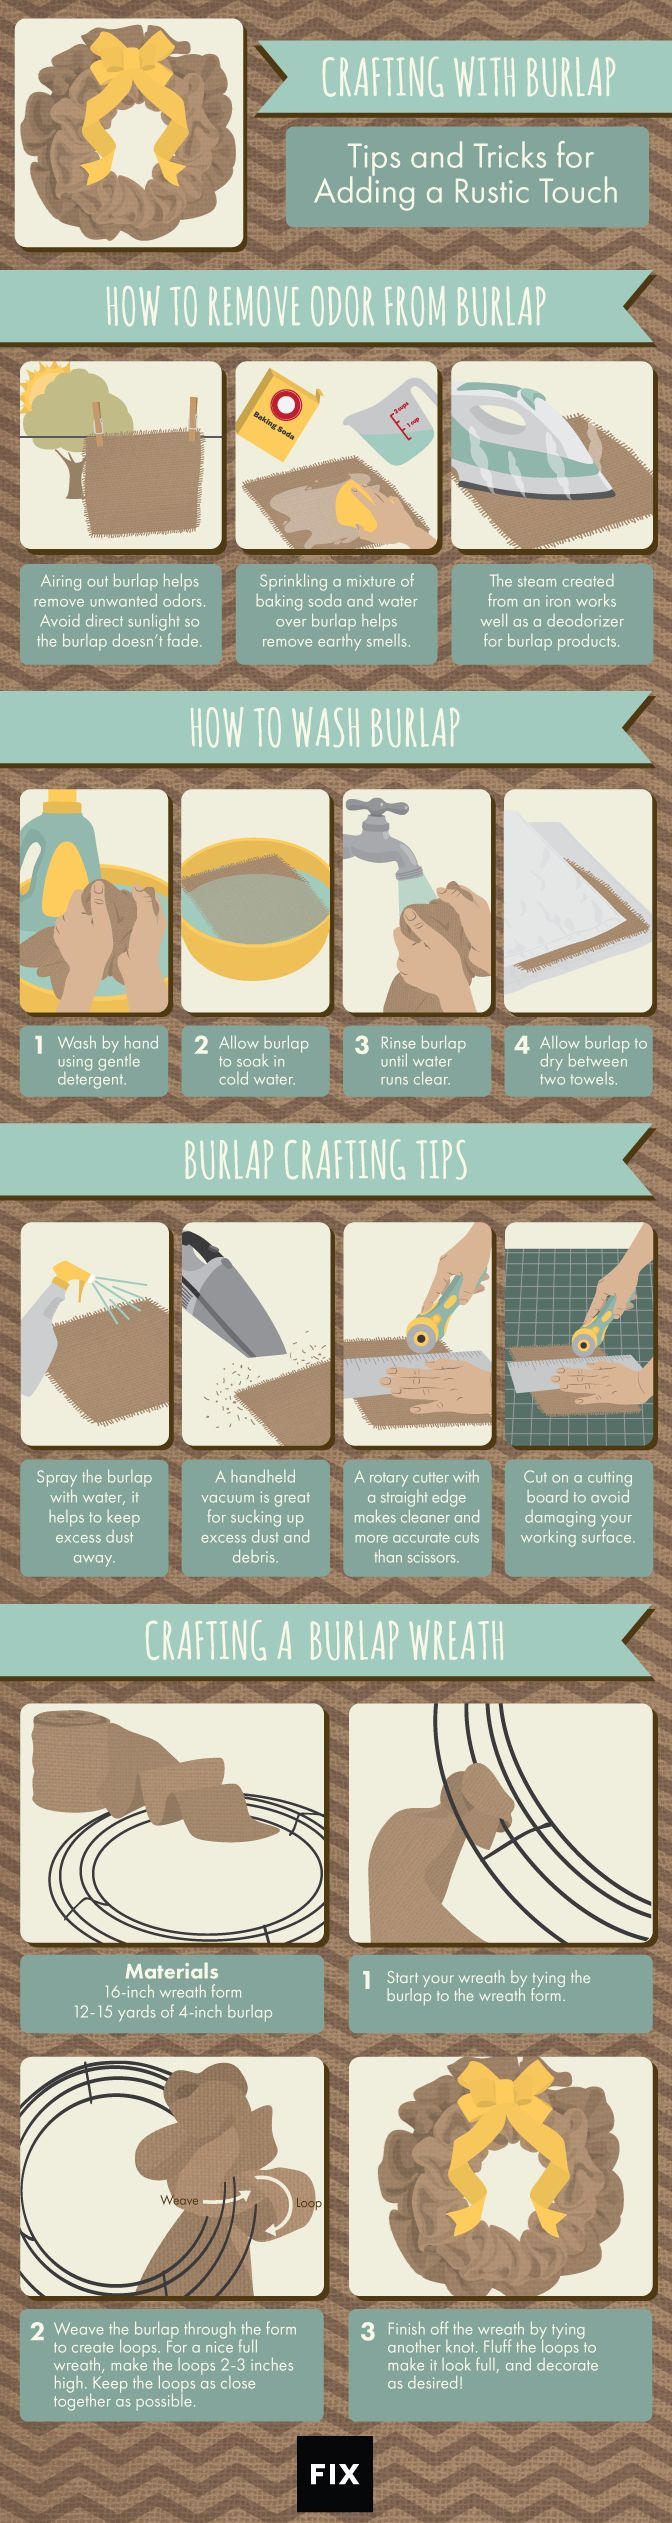 With the growing popularity of burlap home décor, learn how to properly clean, create, and maintain all your burlap crafts. #burlap #DIYcrafting #burlapcrafts